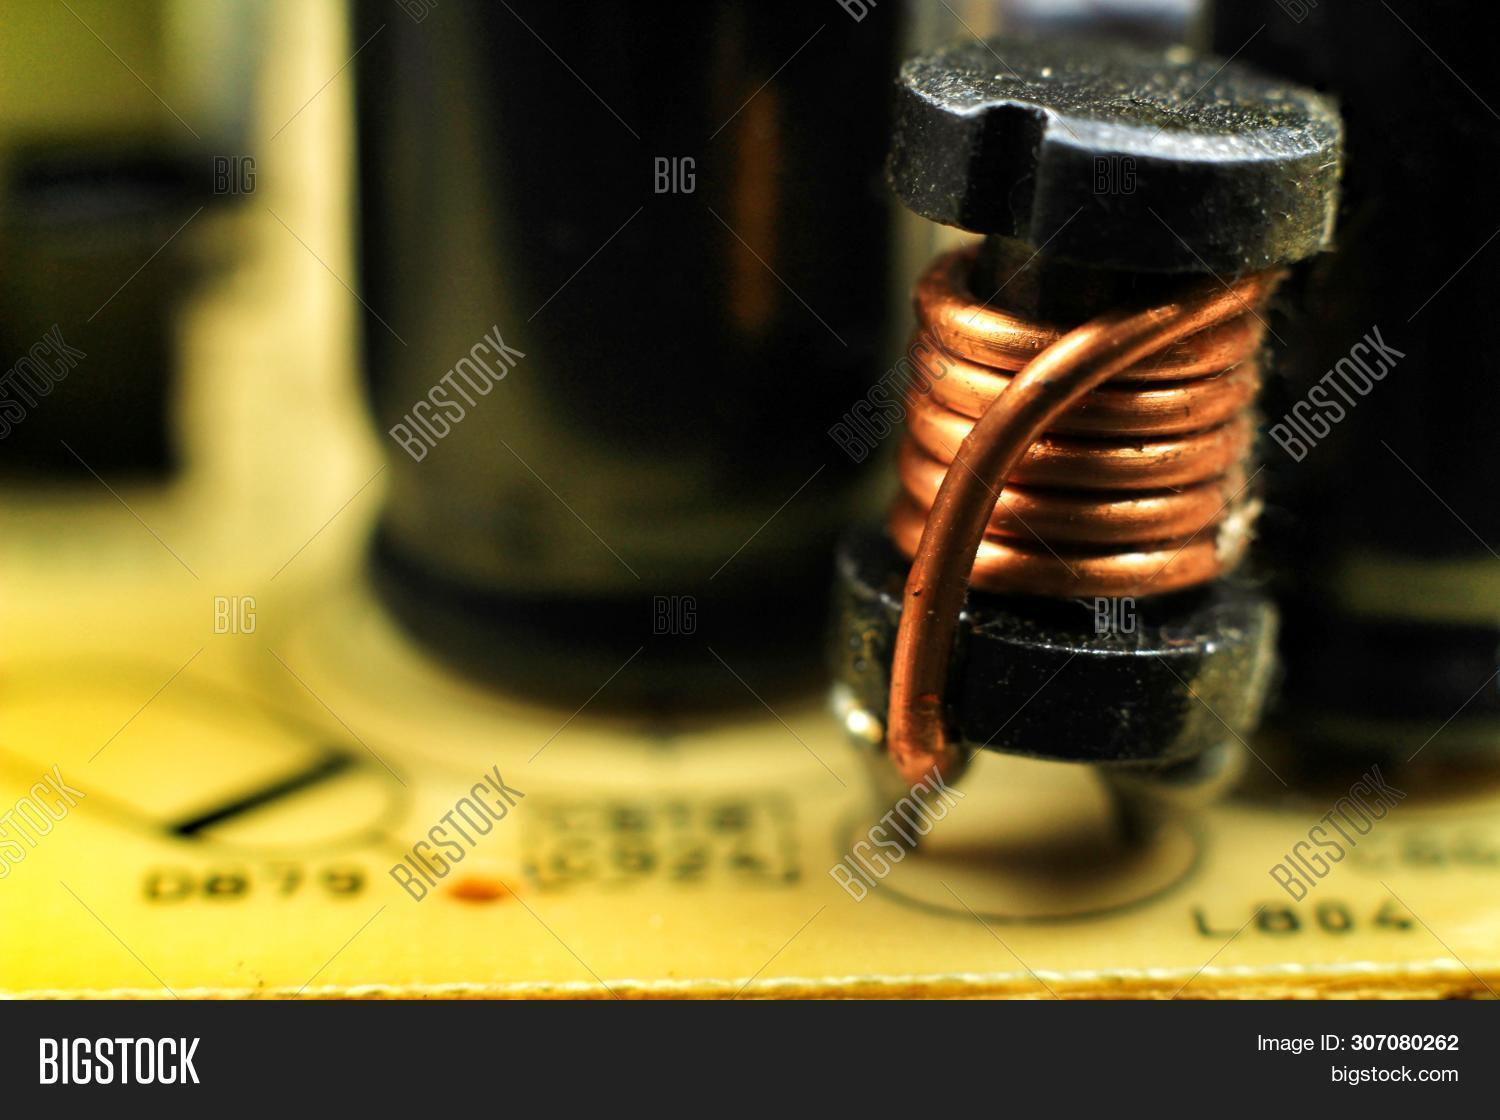 cable,choke,circuit,close-up,closeup,coil,component,copper,current,detail,device,electric,electrical,electricity,electromagnet,electromagnetic,electronic,engineer,equipment,flux,generator,glossy,inductance,induction,inductor,industrial,industry,macro,magnetic,magnetism,metal,metallic,neat,phase,pole,power,reactor,reflective,rotor,shaft,spiral,stator,steel,supply,technology,transformer,voltage,wire,wound